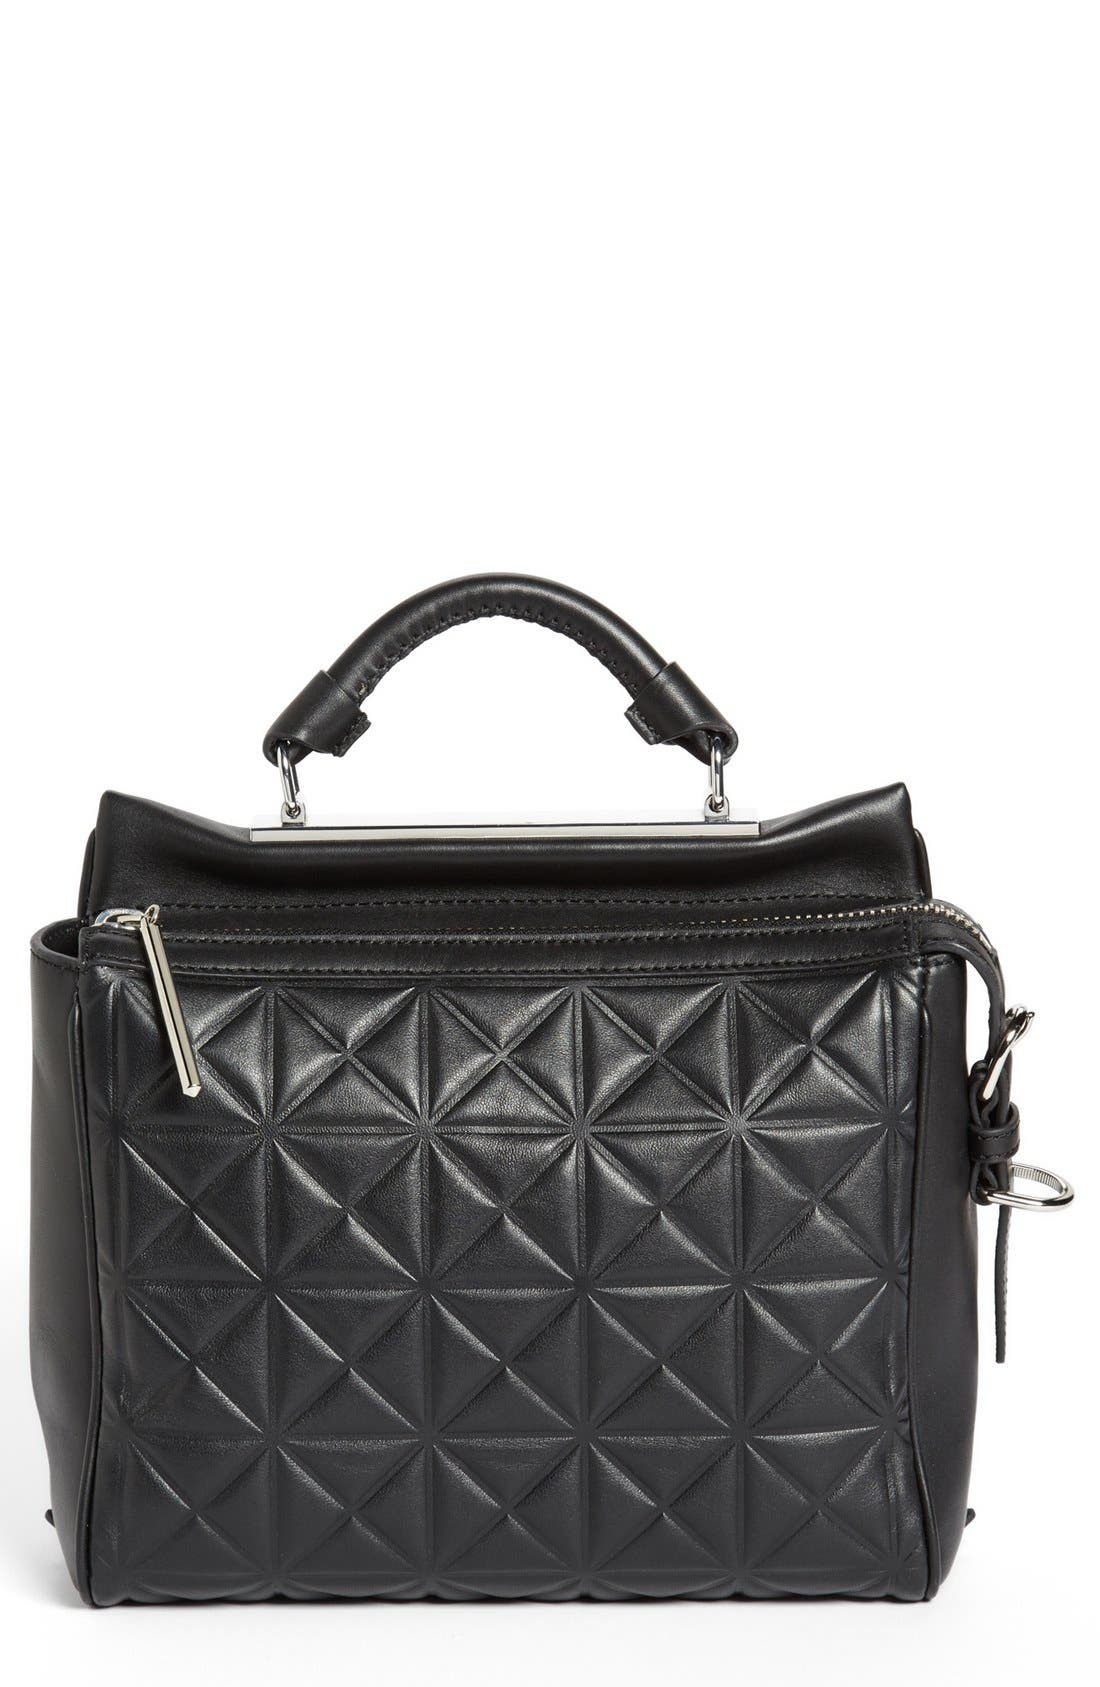 Main Image - 3.1 Phillip Lim 'Small Ryder' Satchel